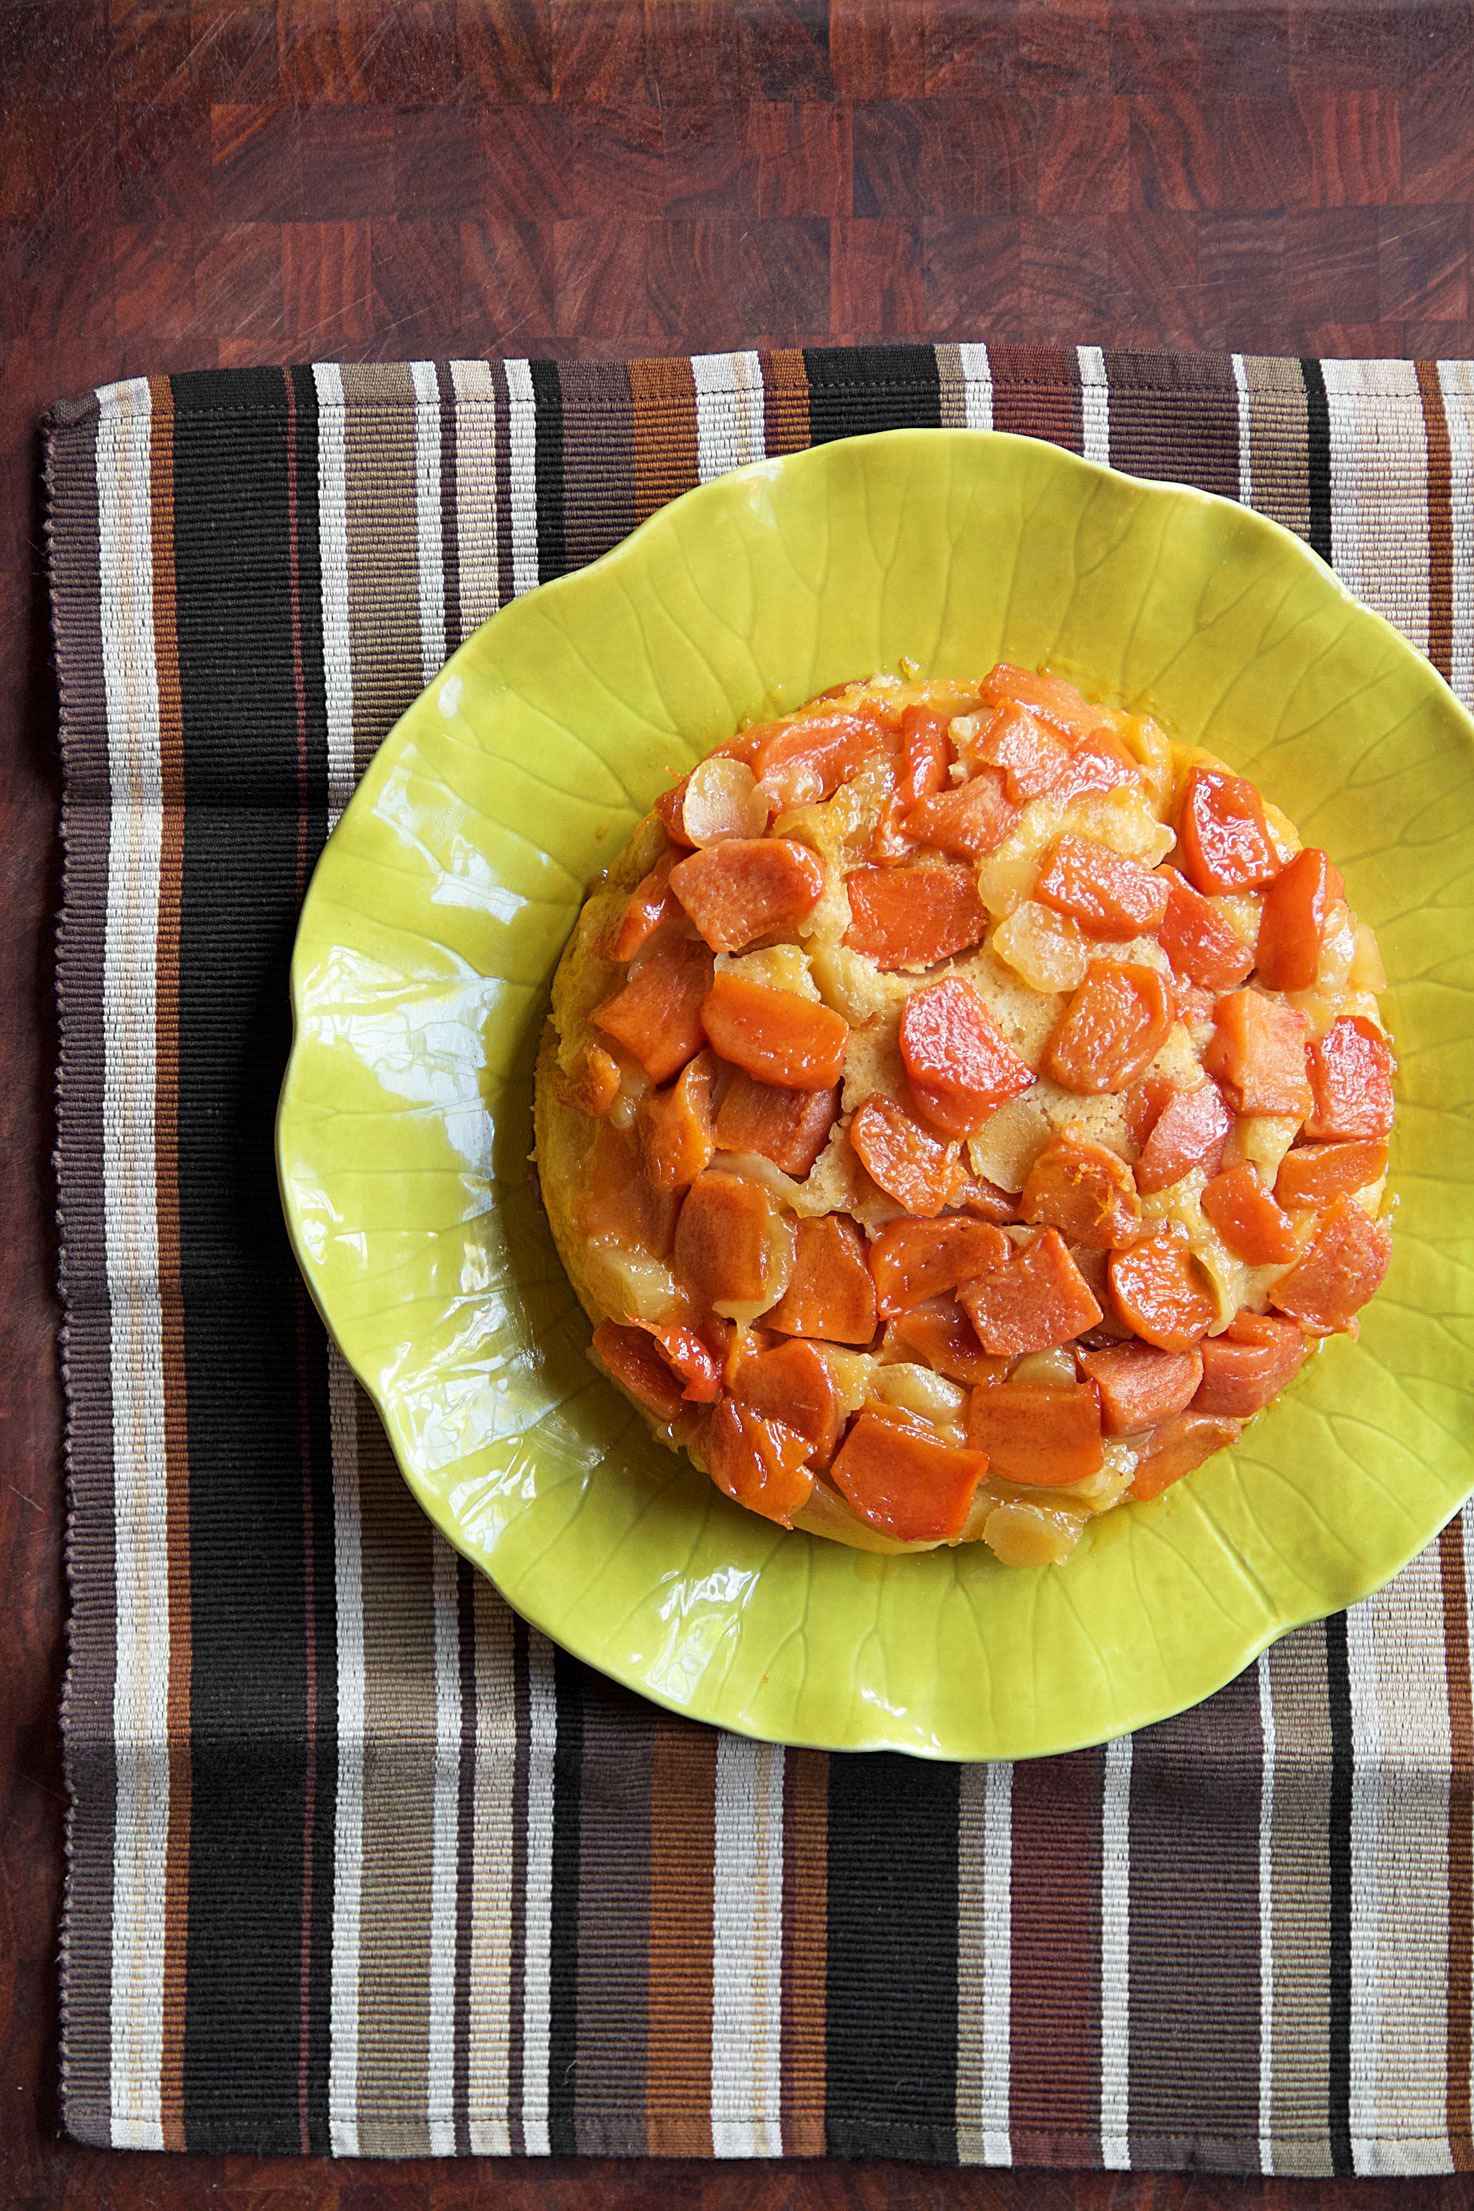 Persimmon-Ginger Upside-Down Cake